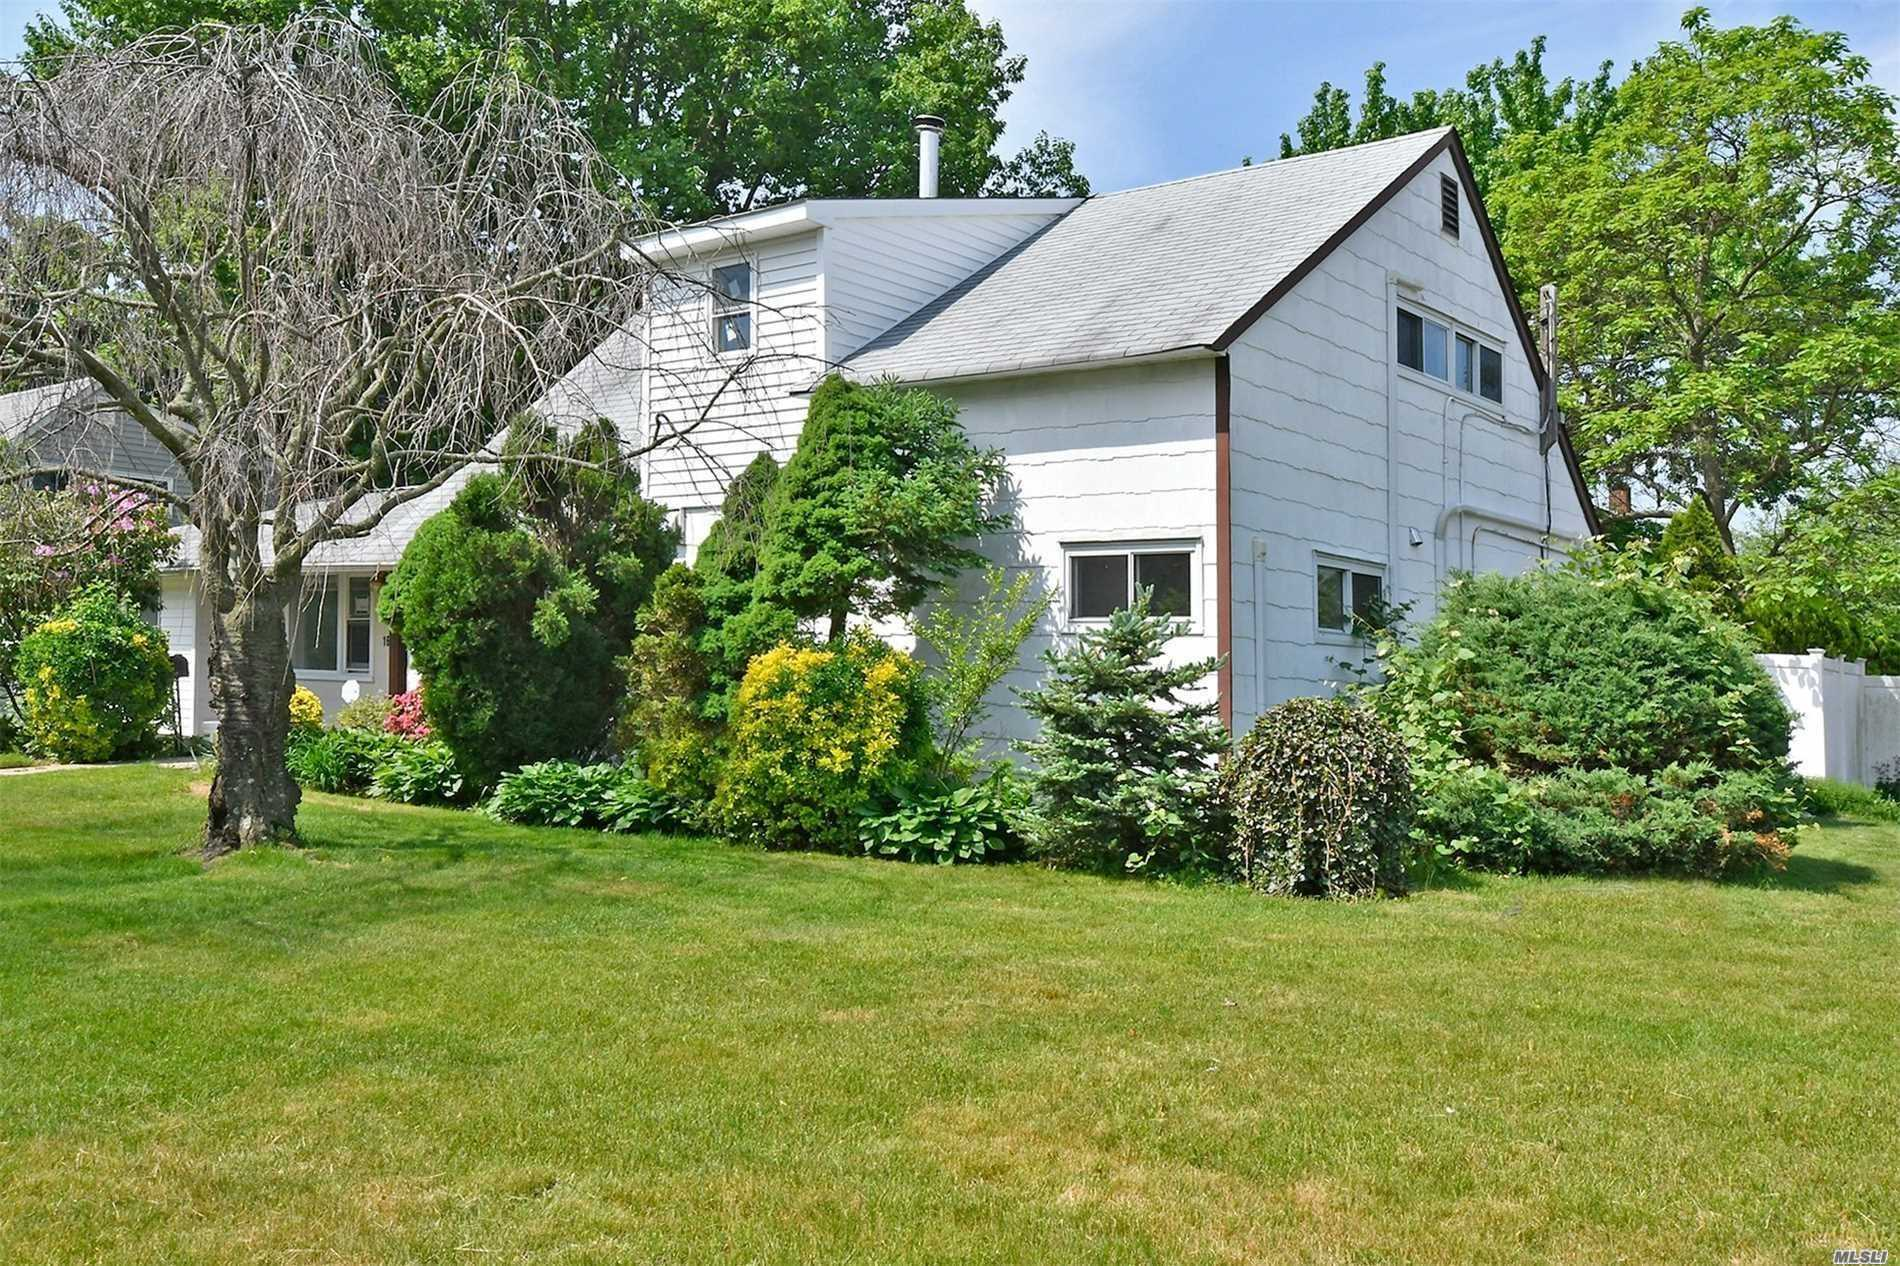 Oversized Property! 5 Bedrooms & 3 Full Baths. Fully Updated W/New Eik , New Bathroom, Floors, Ductless Ac. New Appliances, Washer/Dryer, And Windows. Living And Dining Area Opens To Large Deck. French Doors To Park Like Backyard. Close To All, Highway, Shopping And Lirr!